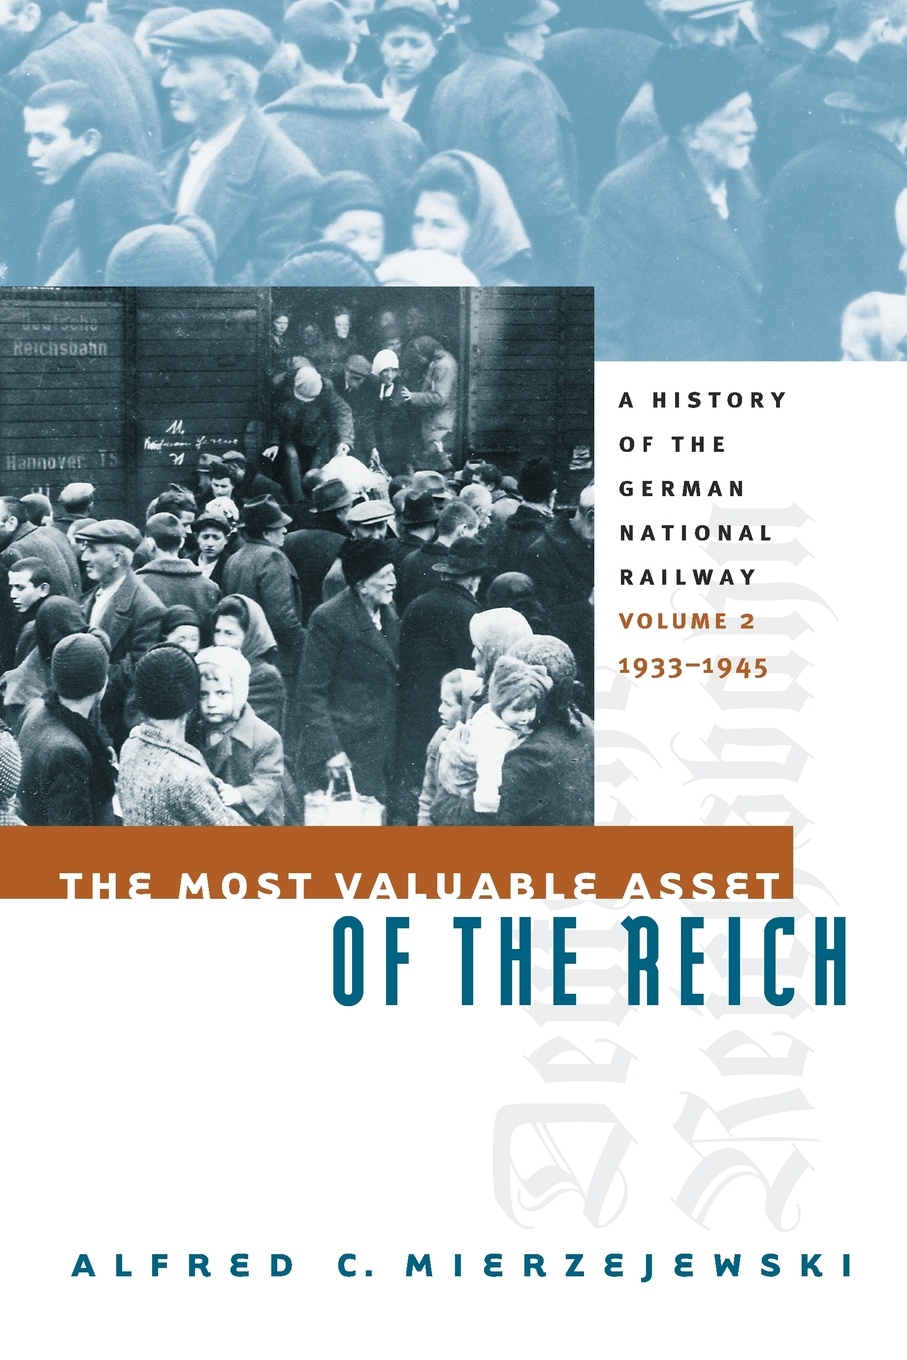 Фото - Alfred C. Mierzejewski The Most Valuable Asset of the Reich. A History of the German National Railway Volume 2, 1933-1945 history of the 89th division u s a from its organization in 1917 through its operations in the world war the occupation of germany and until demobilization in 1919